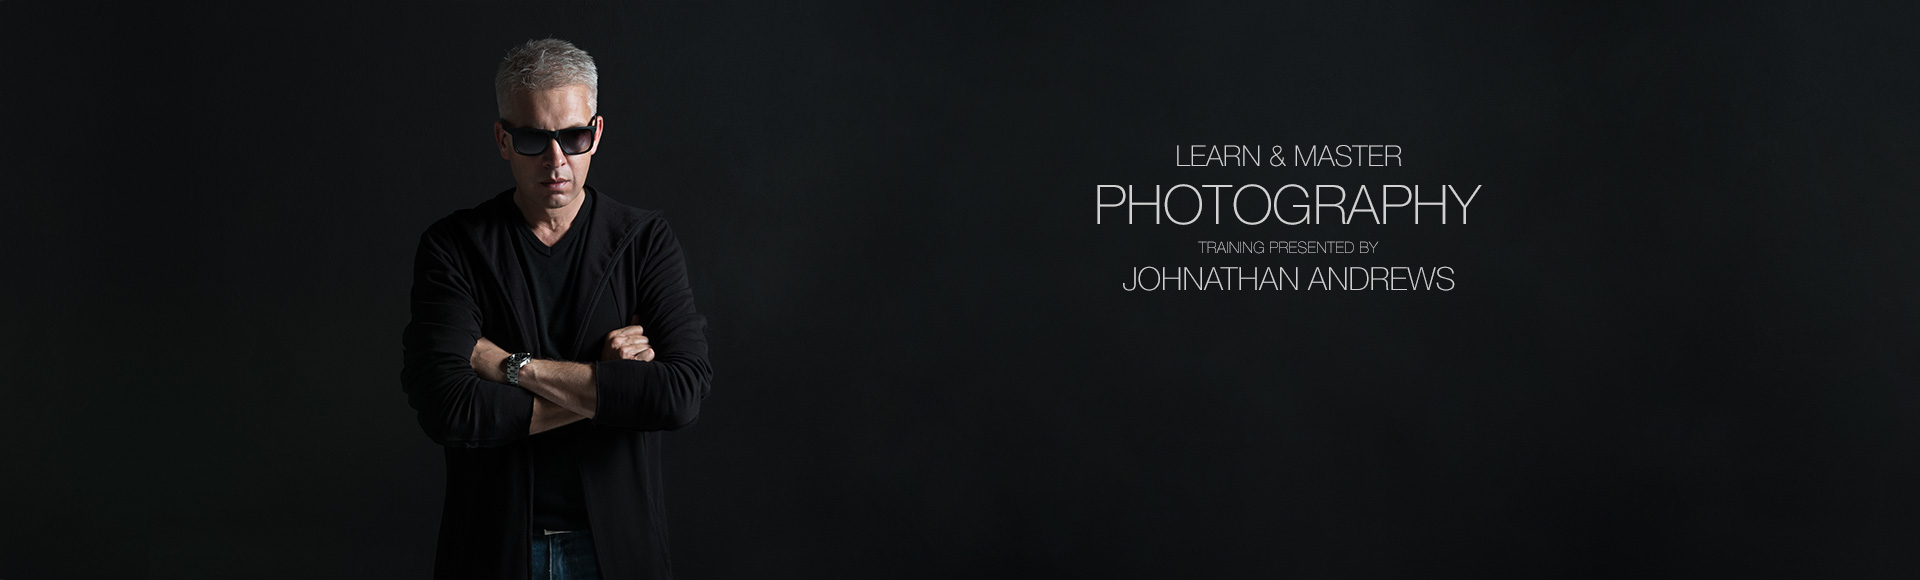 Learn Digital Photography - Private Photography Training Sessions